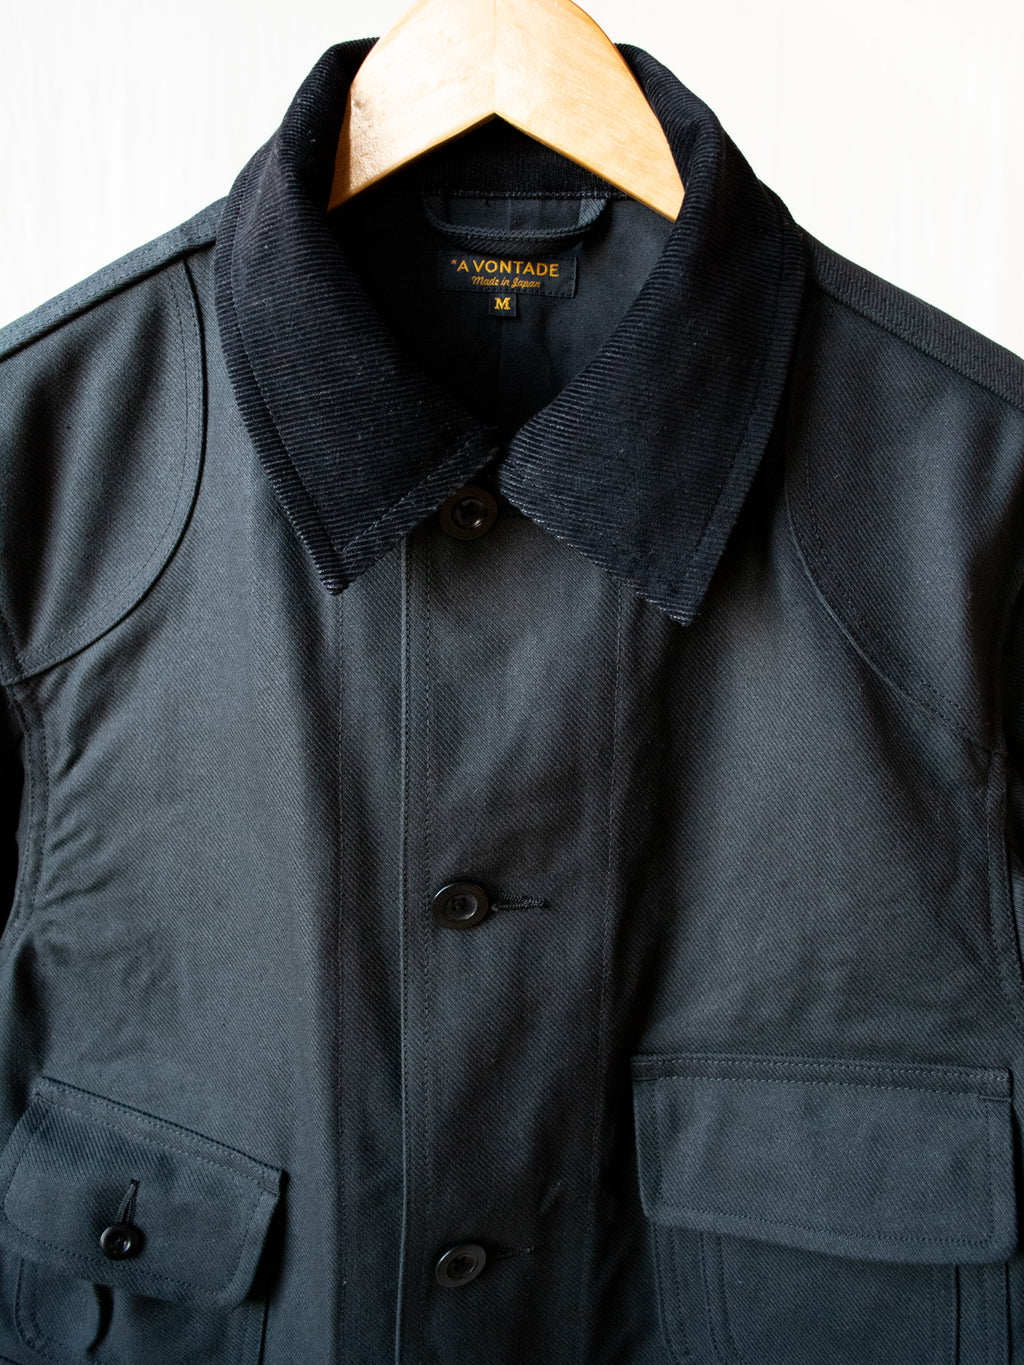 Old Hunting Jacket - Black